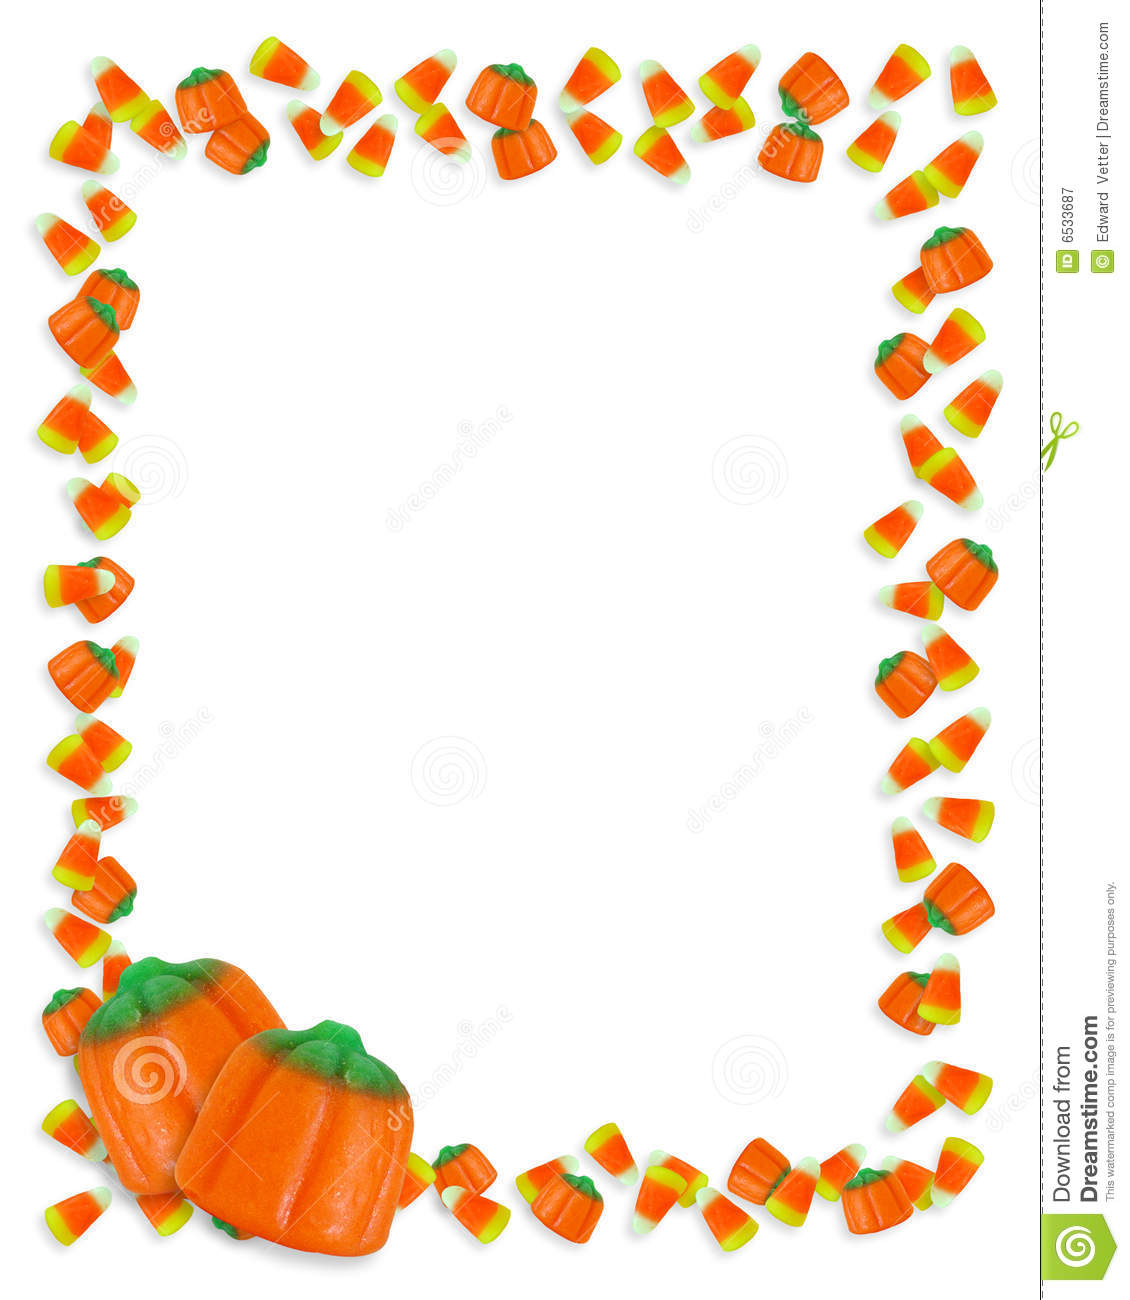 Clip Art Pumpkin Border Clip Art halloween pumpkin border clipart kid candy corn royalty free stock photography image